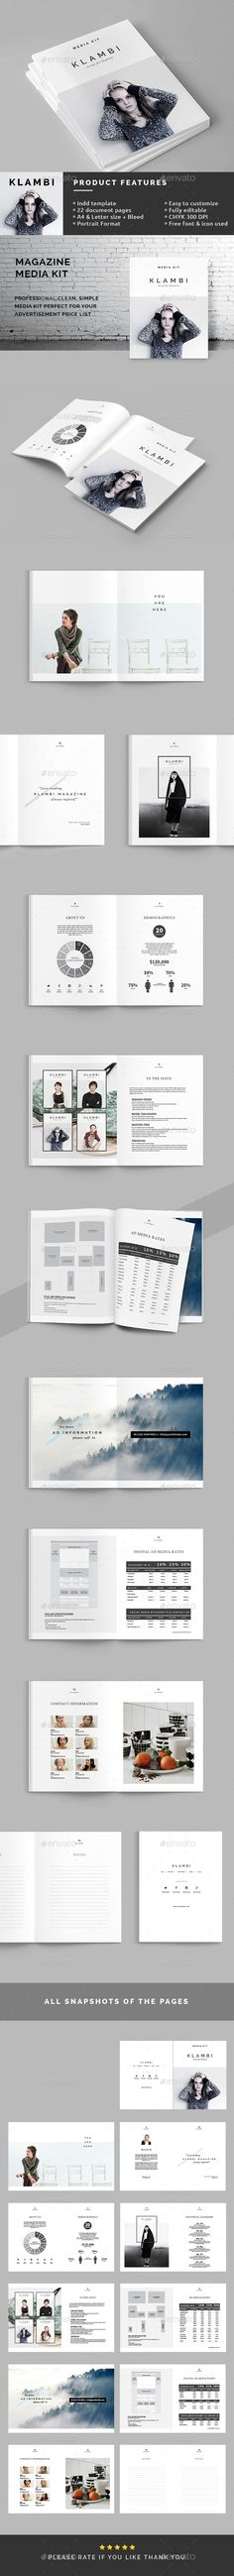 Professional, Fresh and Clean Magazine Media Kit Template InDesign INDD #design Download: http://graphicriver.net/item/magazine-media-kit/14011538?ref=ksioks